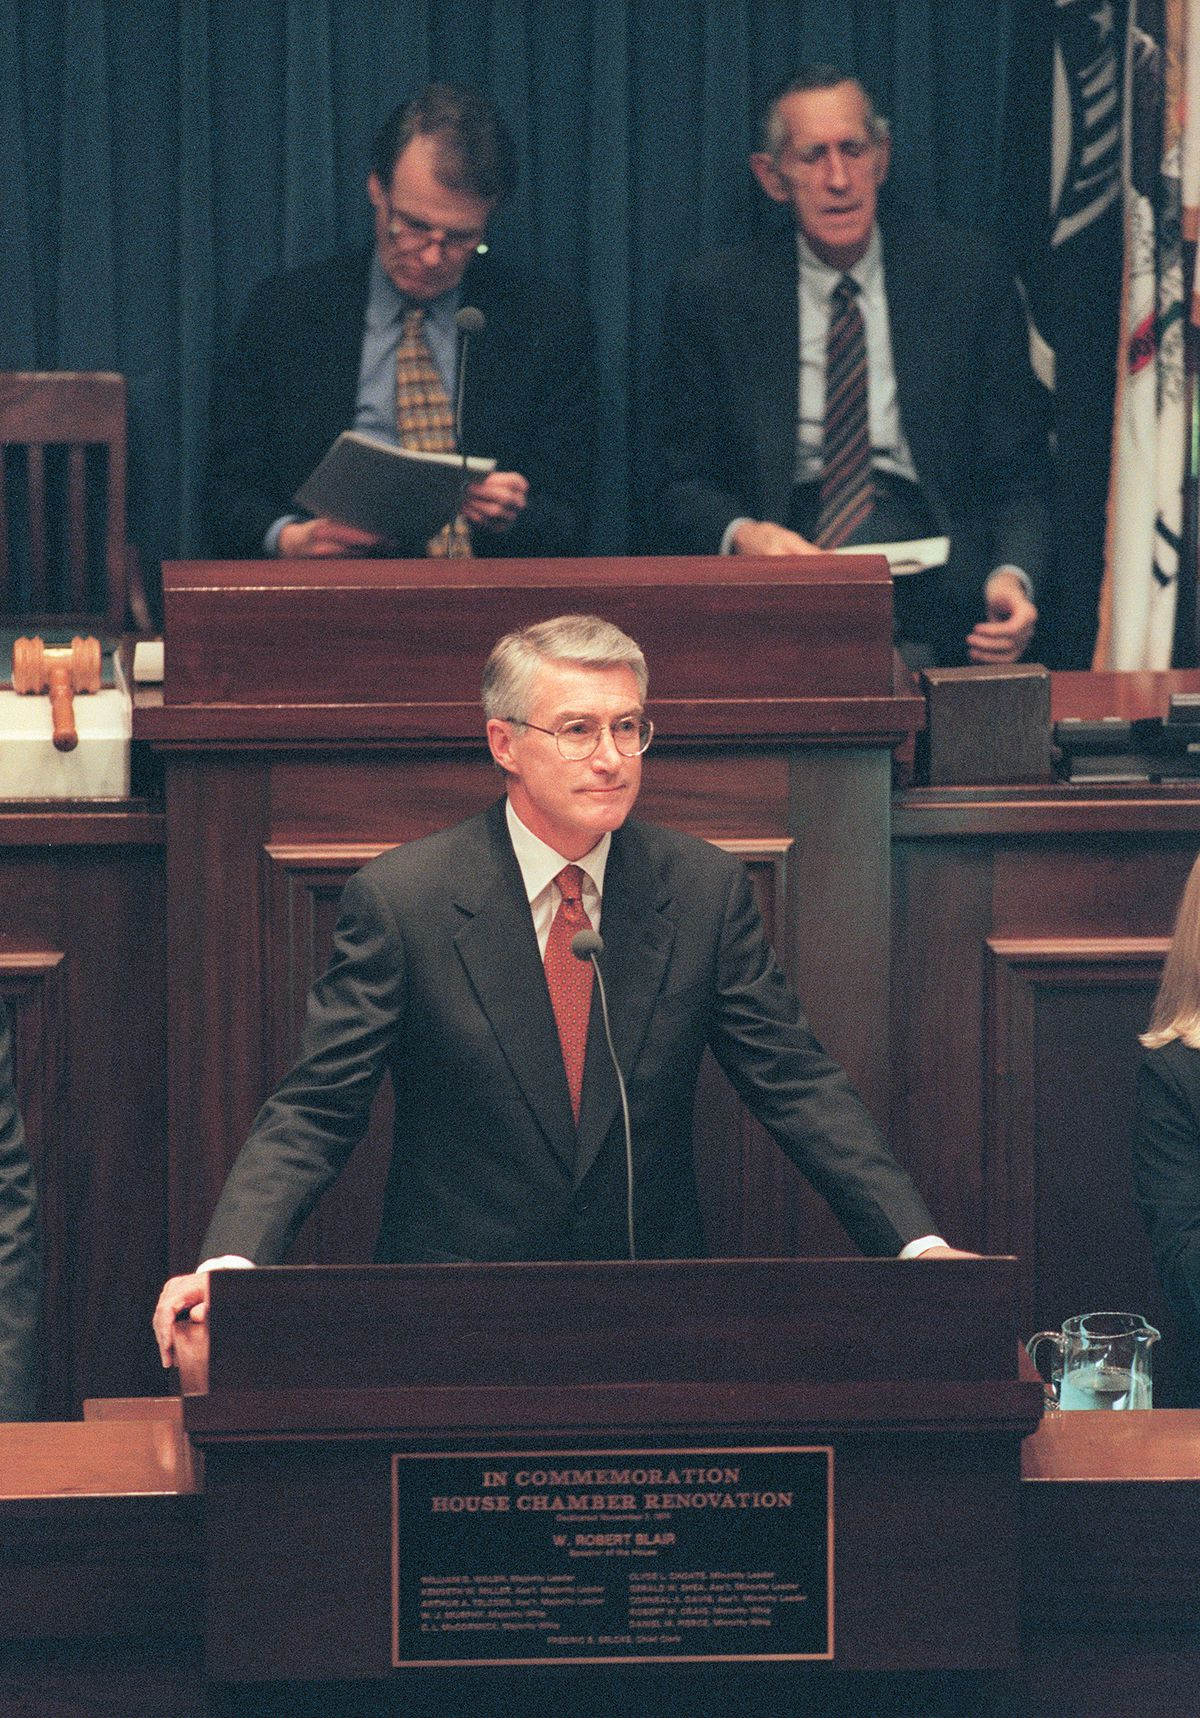 Then-Gov. Jim Edgar delivers his 1995 State of the State address at the Illinois State Capitol, in front of then-House Speaker Michael Madigan (left).